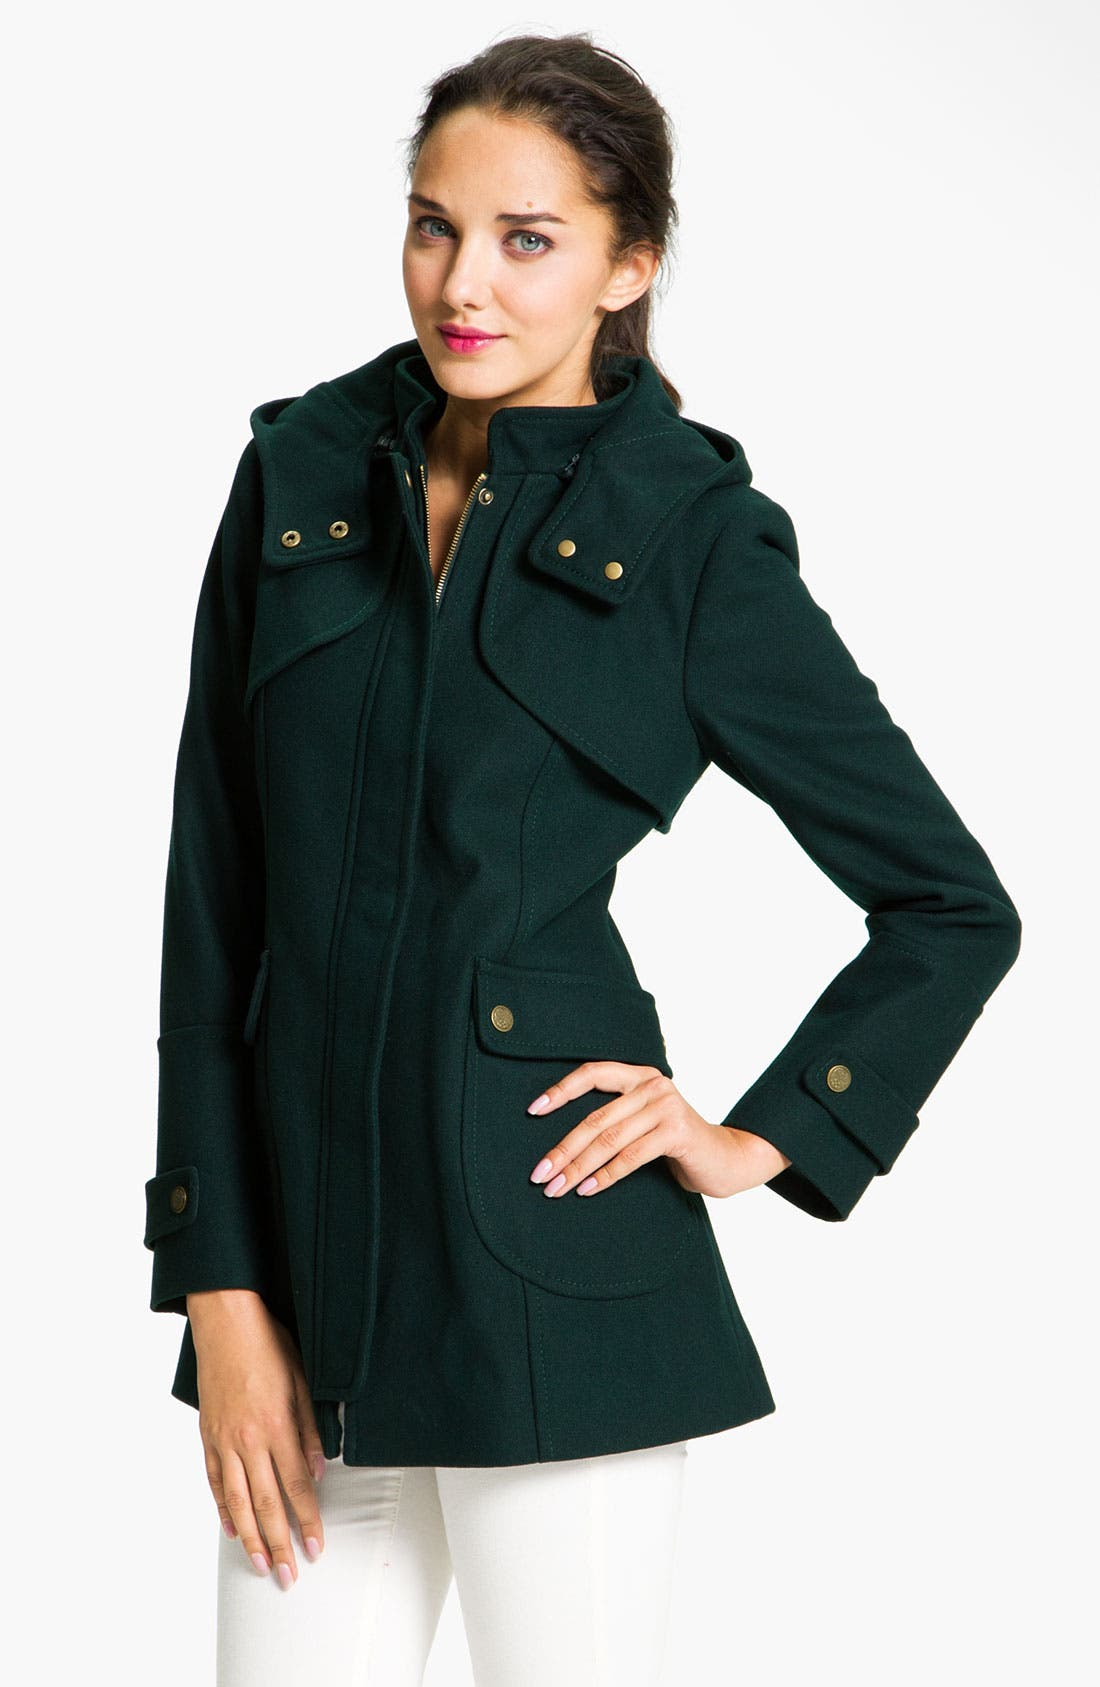 Main Image - Vince Camuto Wool Blend Jacket with Detachable Hood (Petite)